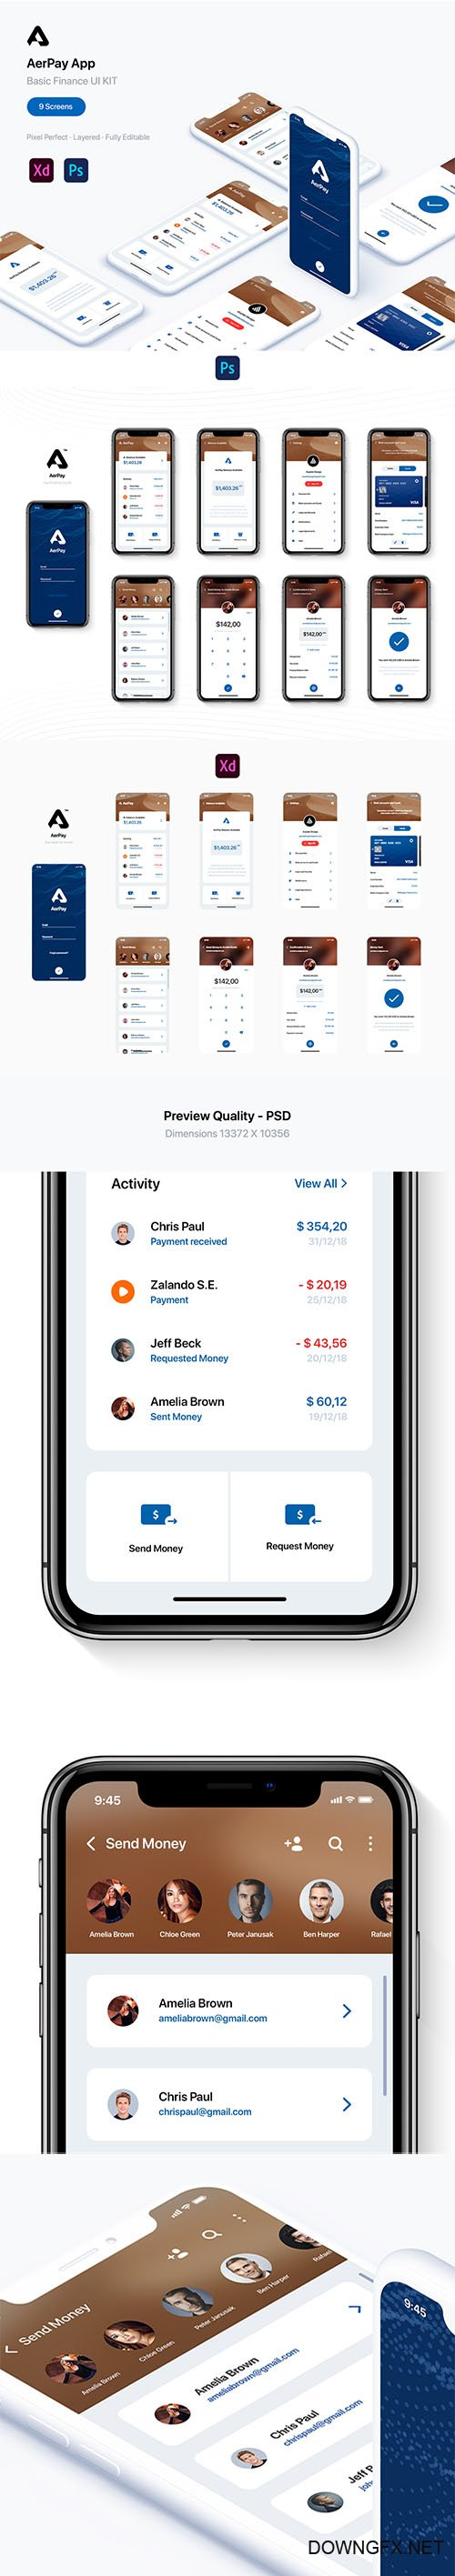 AerPay Finance UI Kit